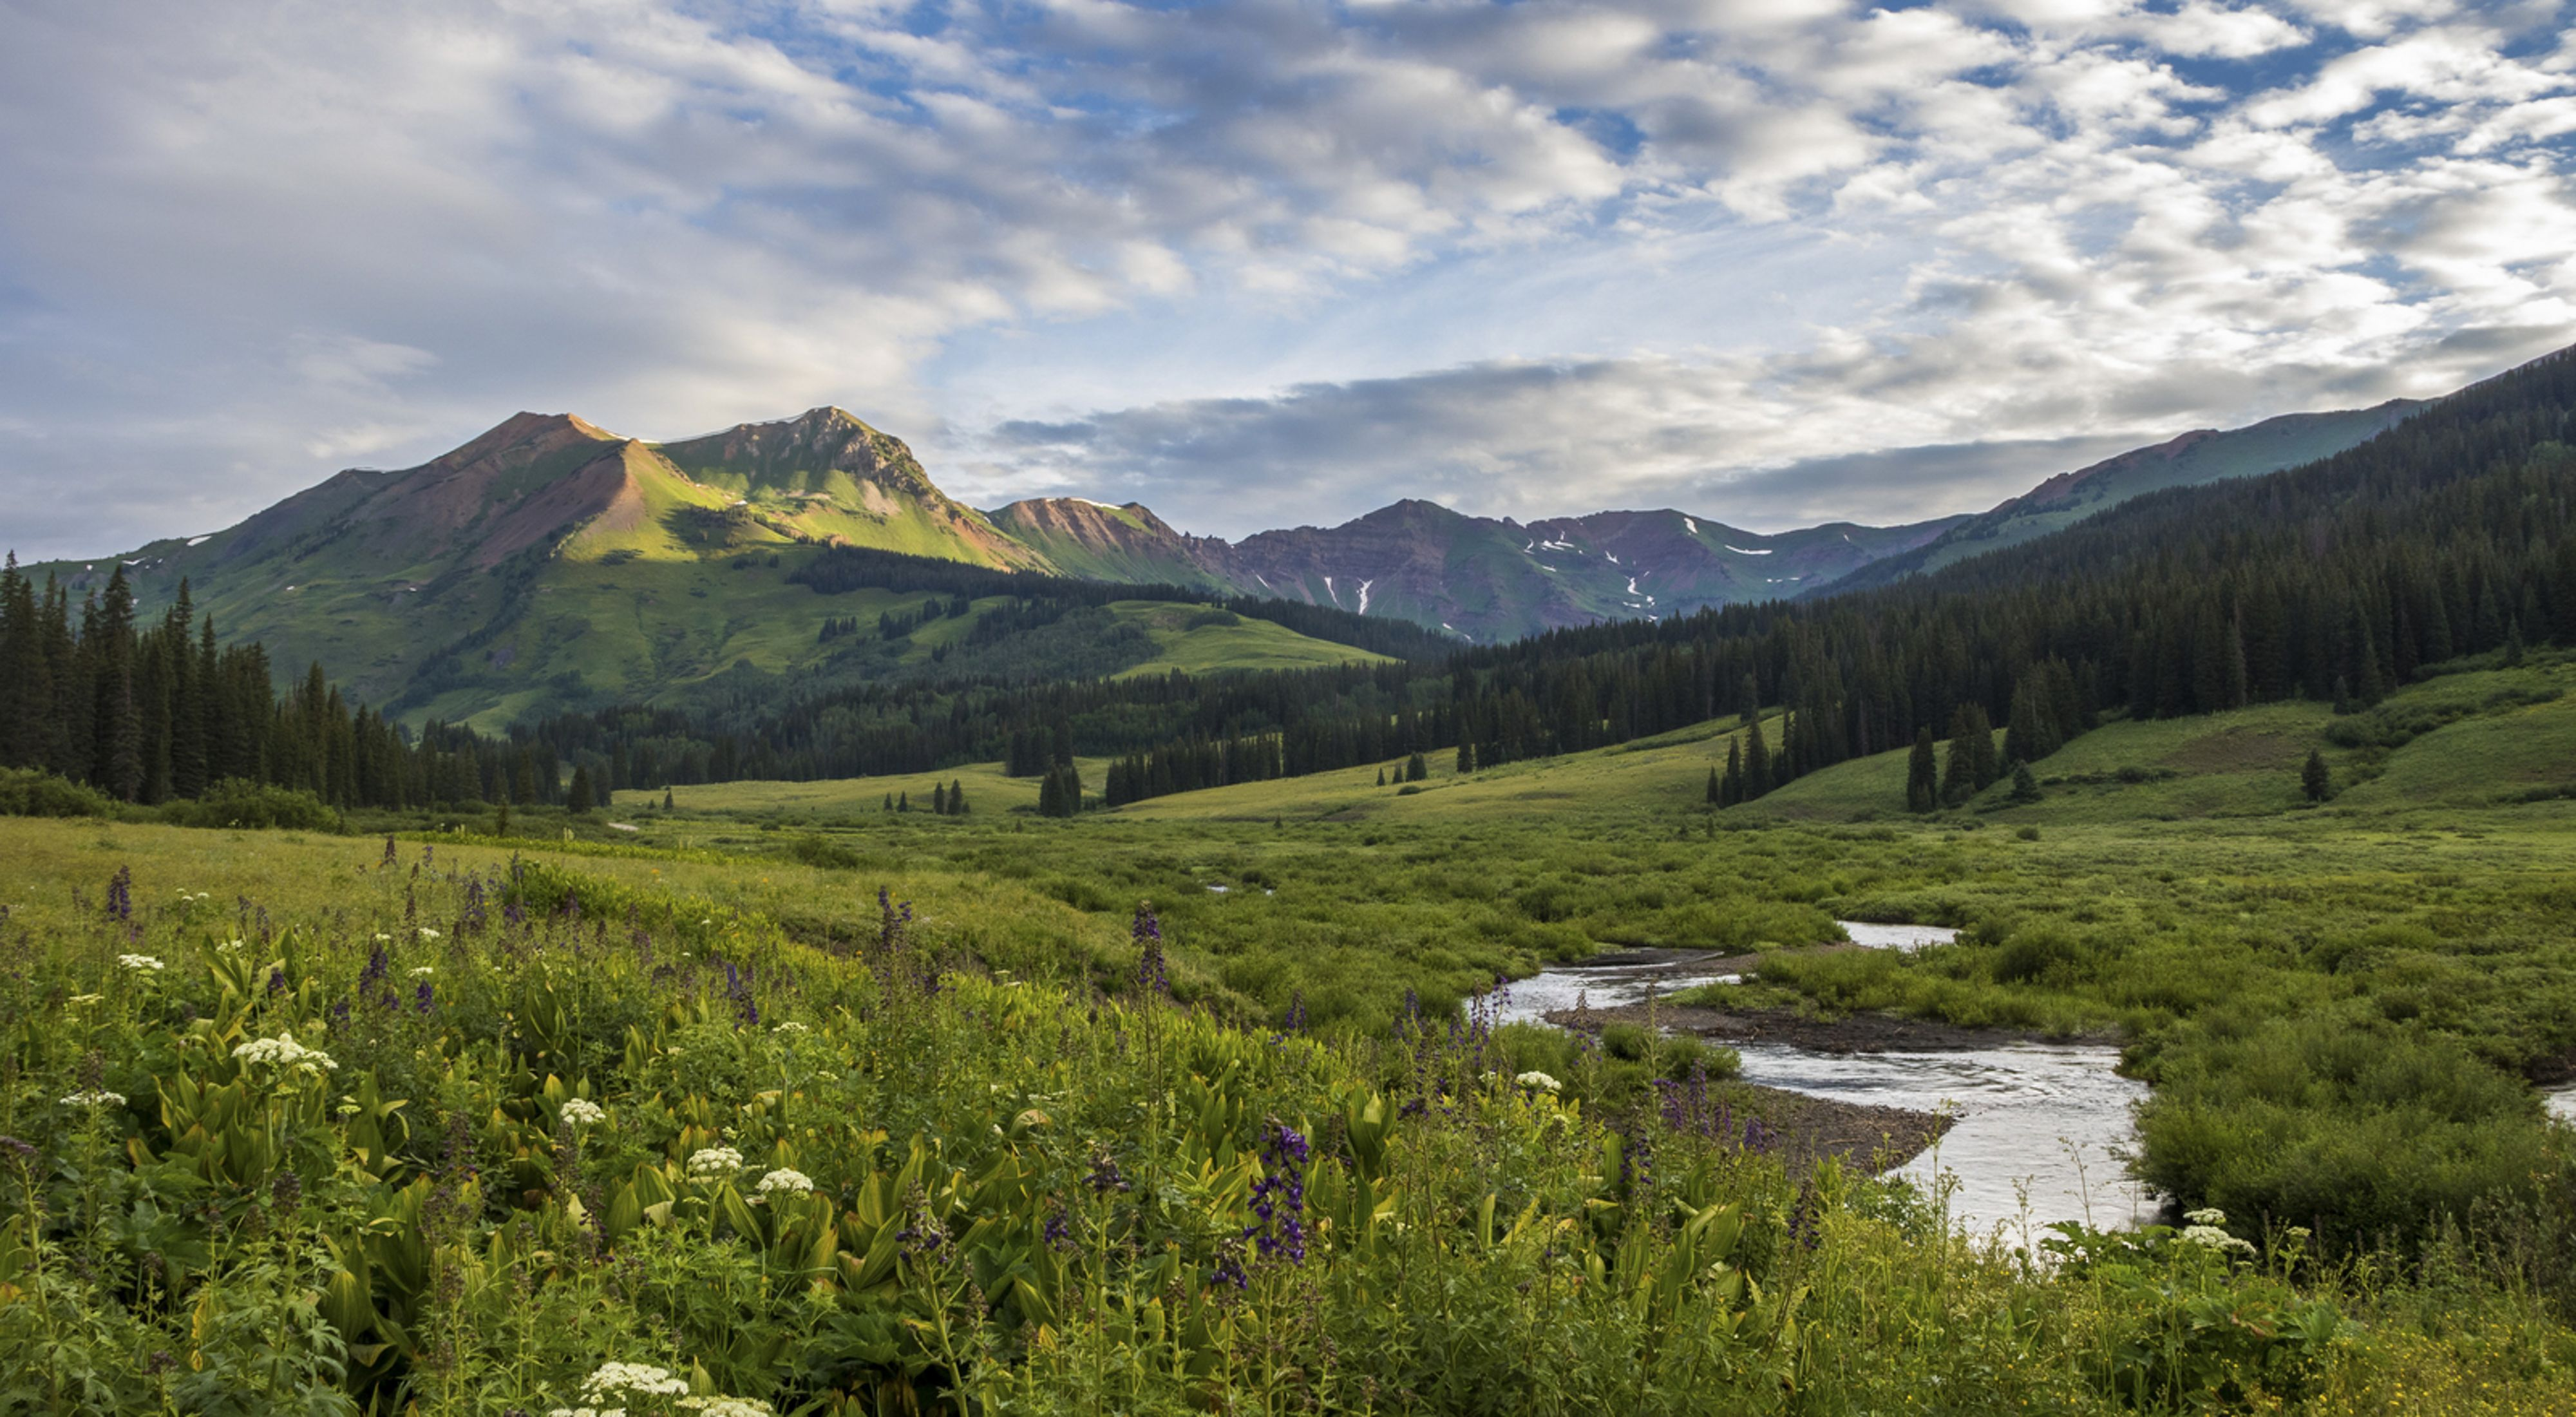 Photo of a high alpine meadow in Colorado's East River basin.